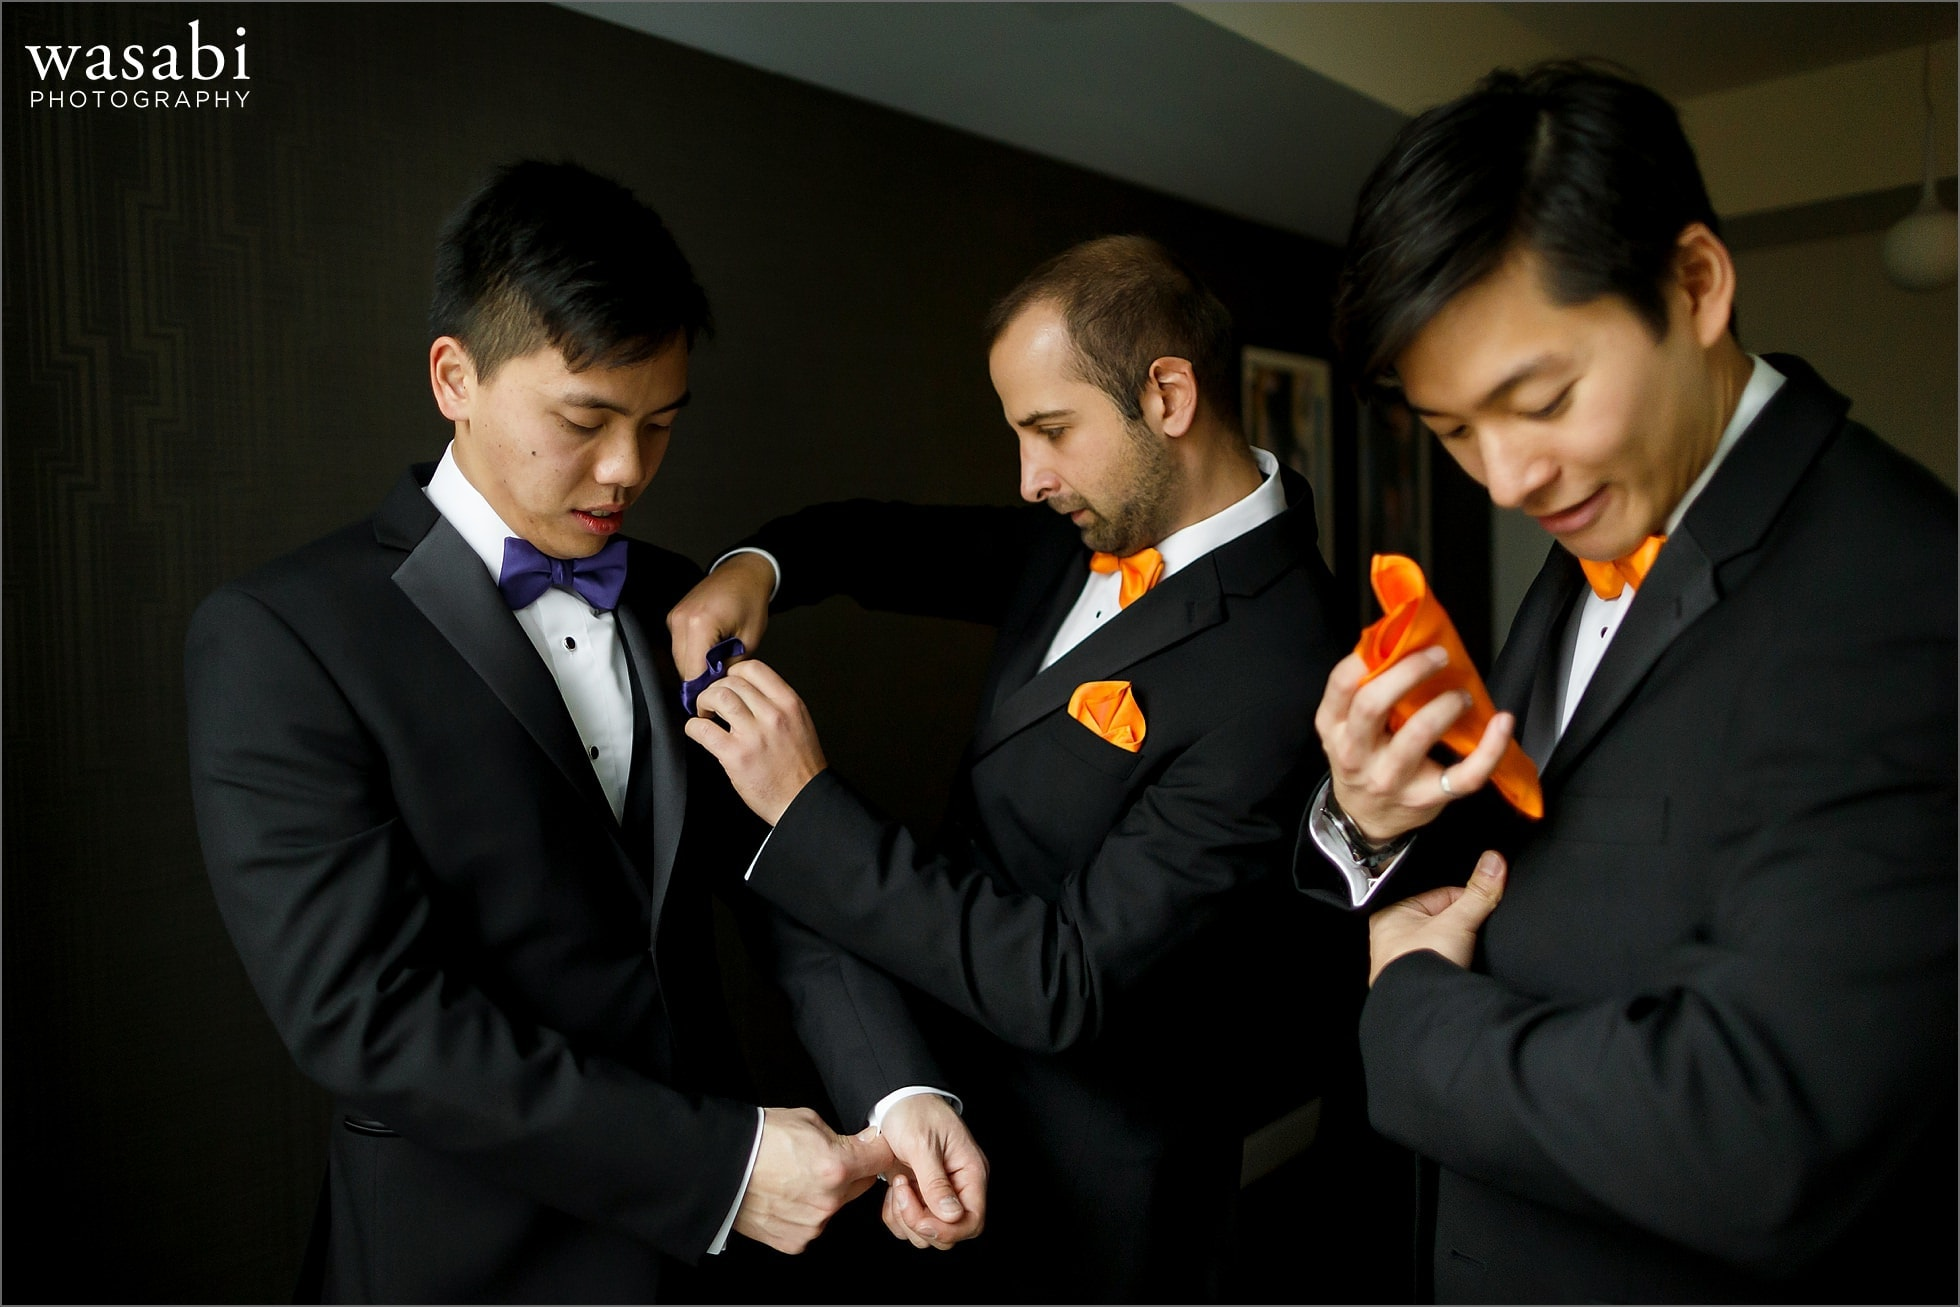 Groom and groomsmen get ready for wedding at Godfrey Hotel in Chicago